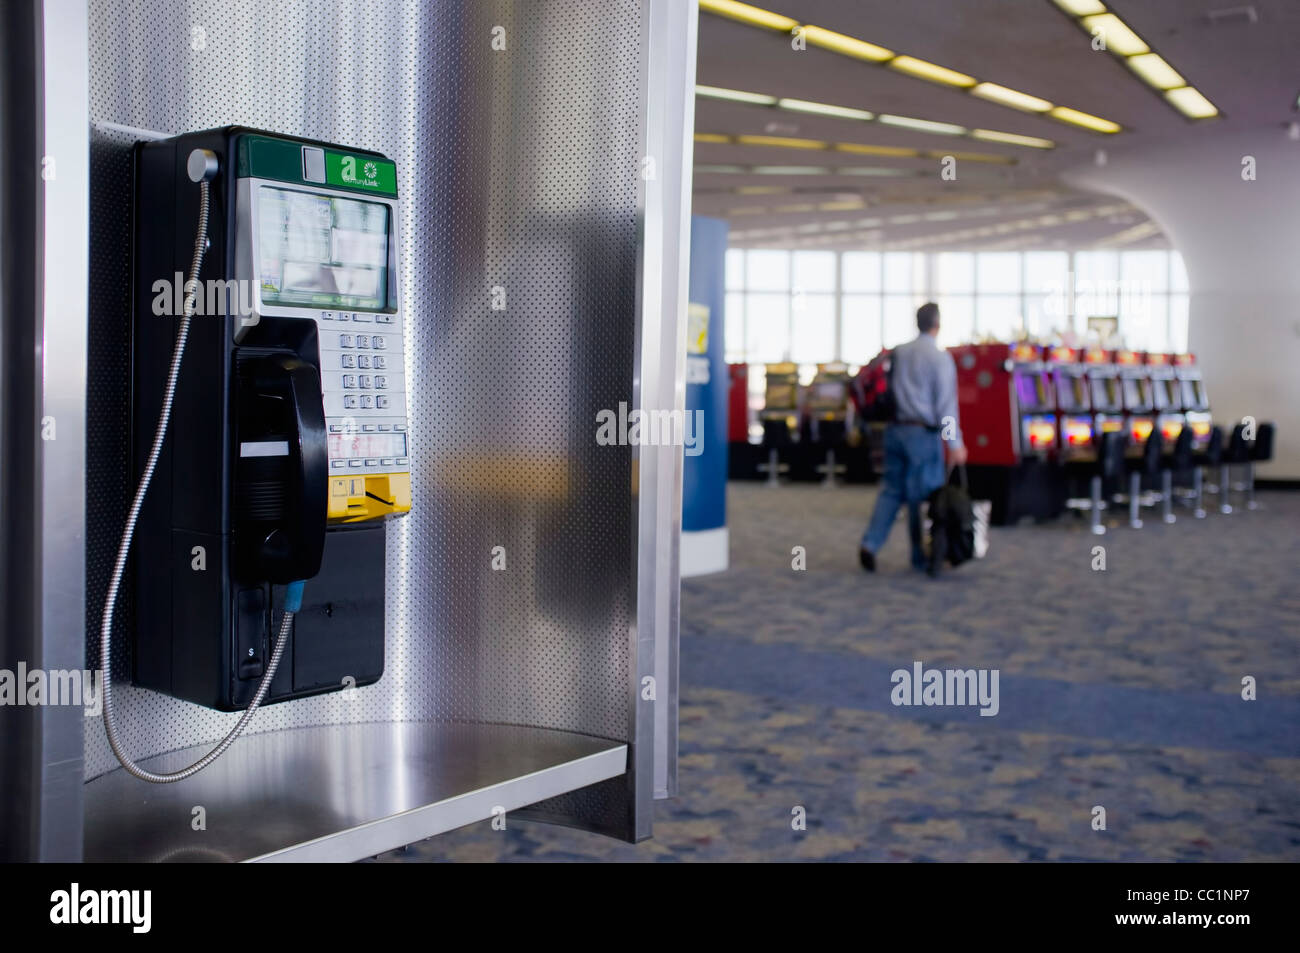 Airport Payphone - Stock Image